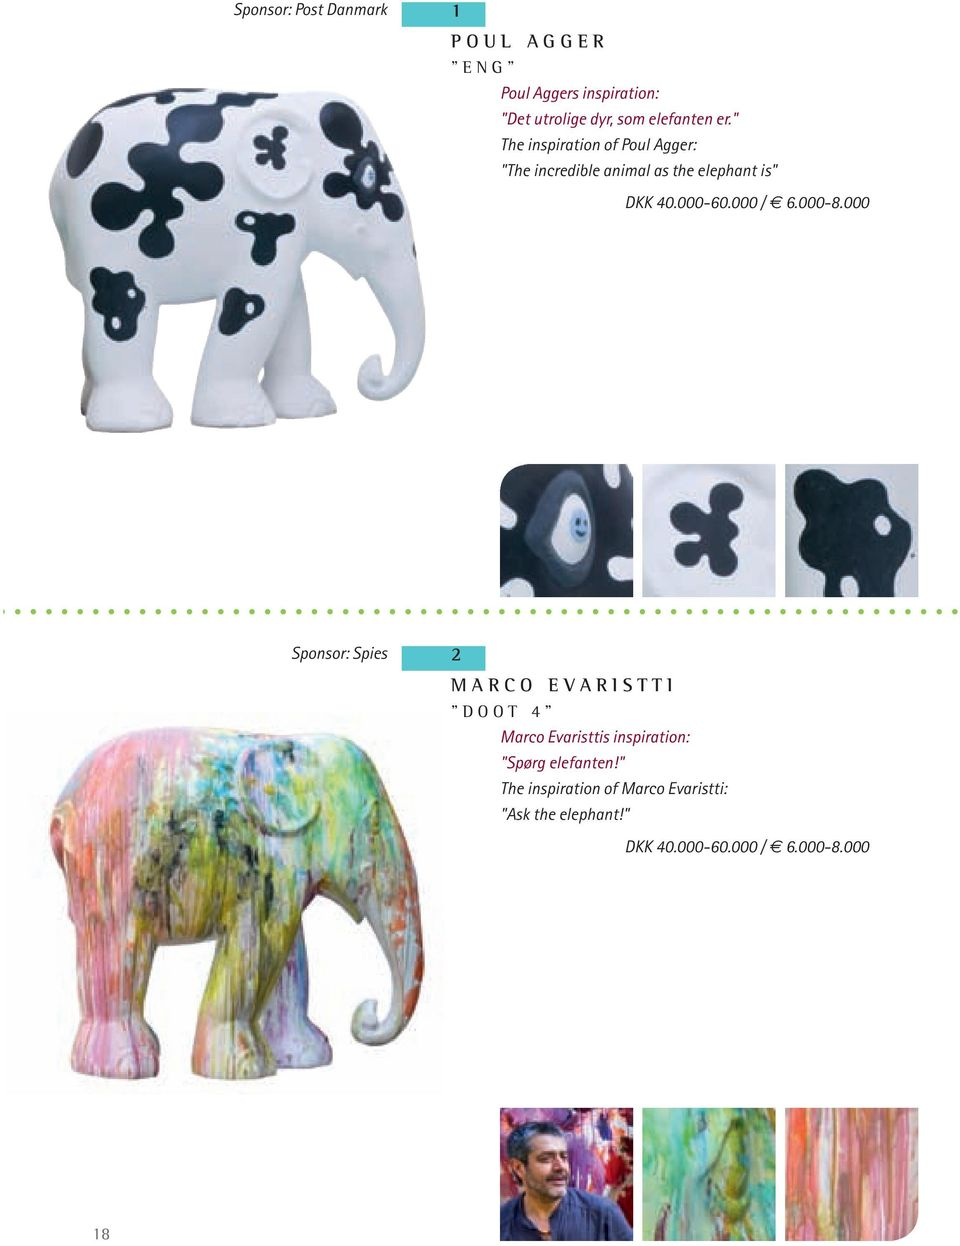 """ The inspiration of Poul Agger: ""The incredible animal as the elephant is"""